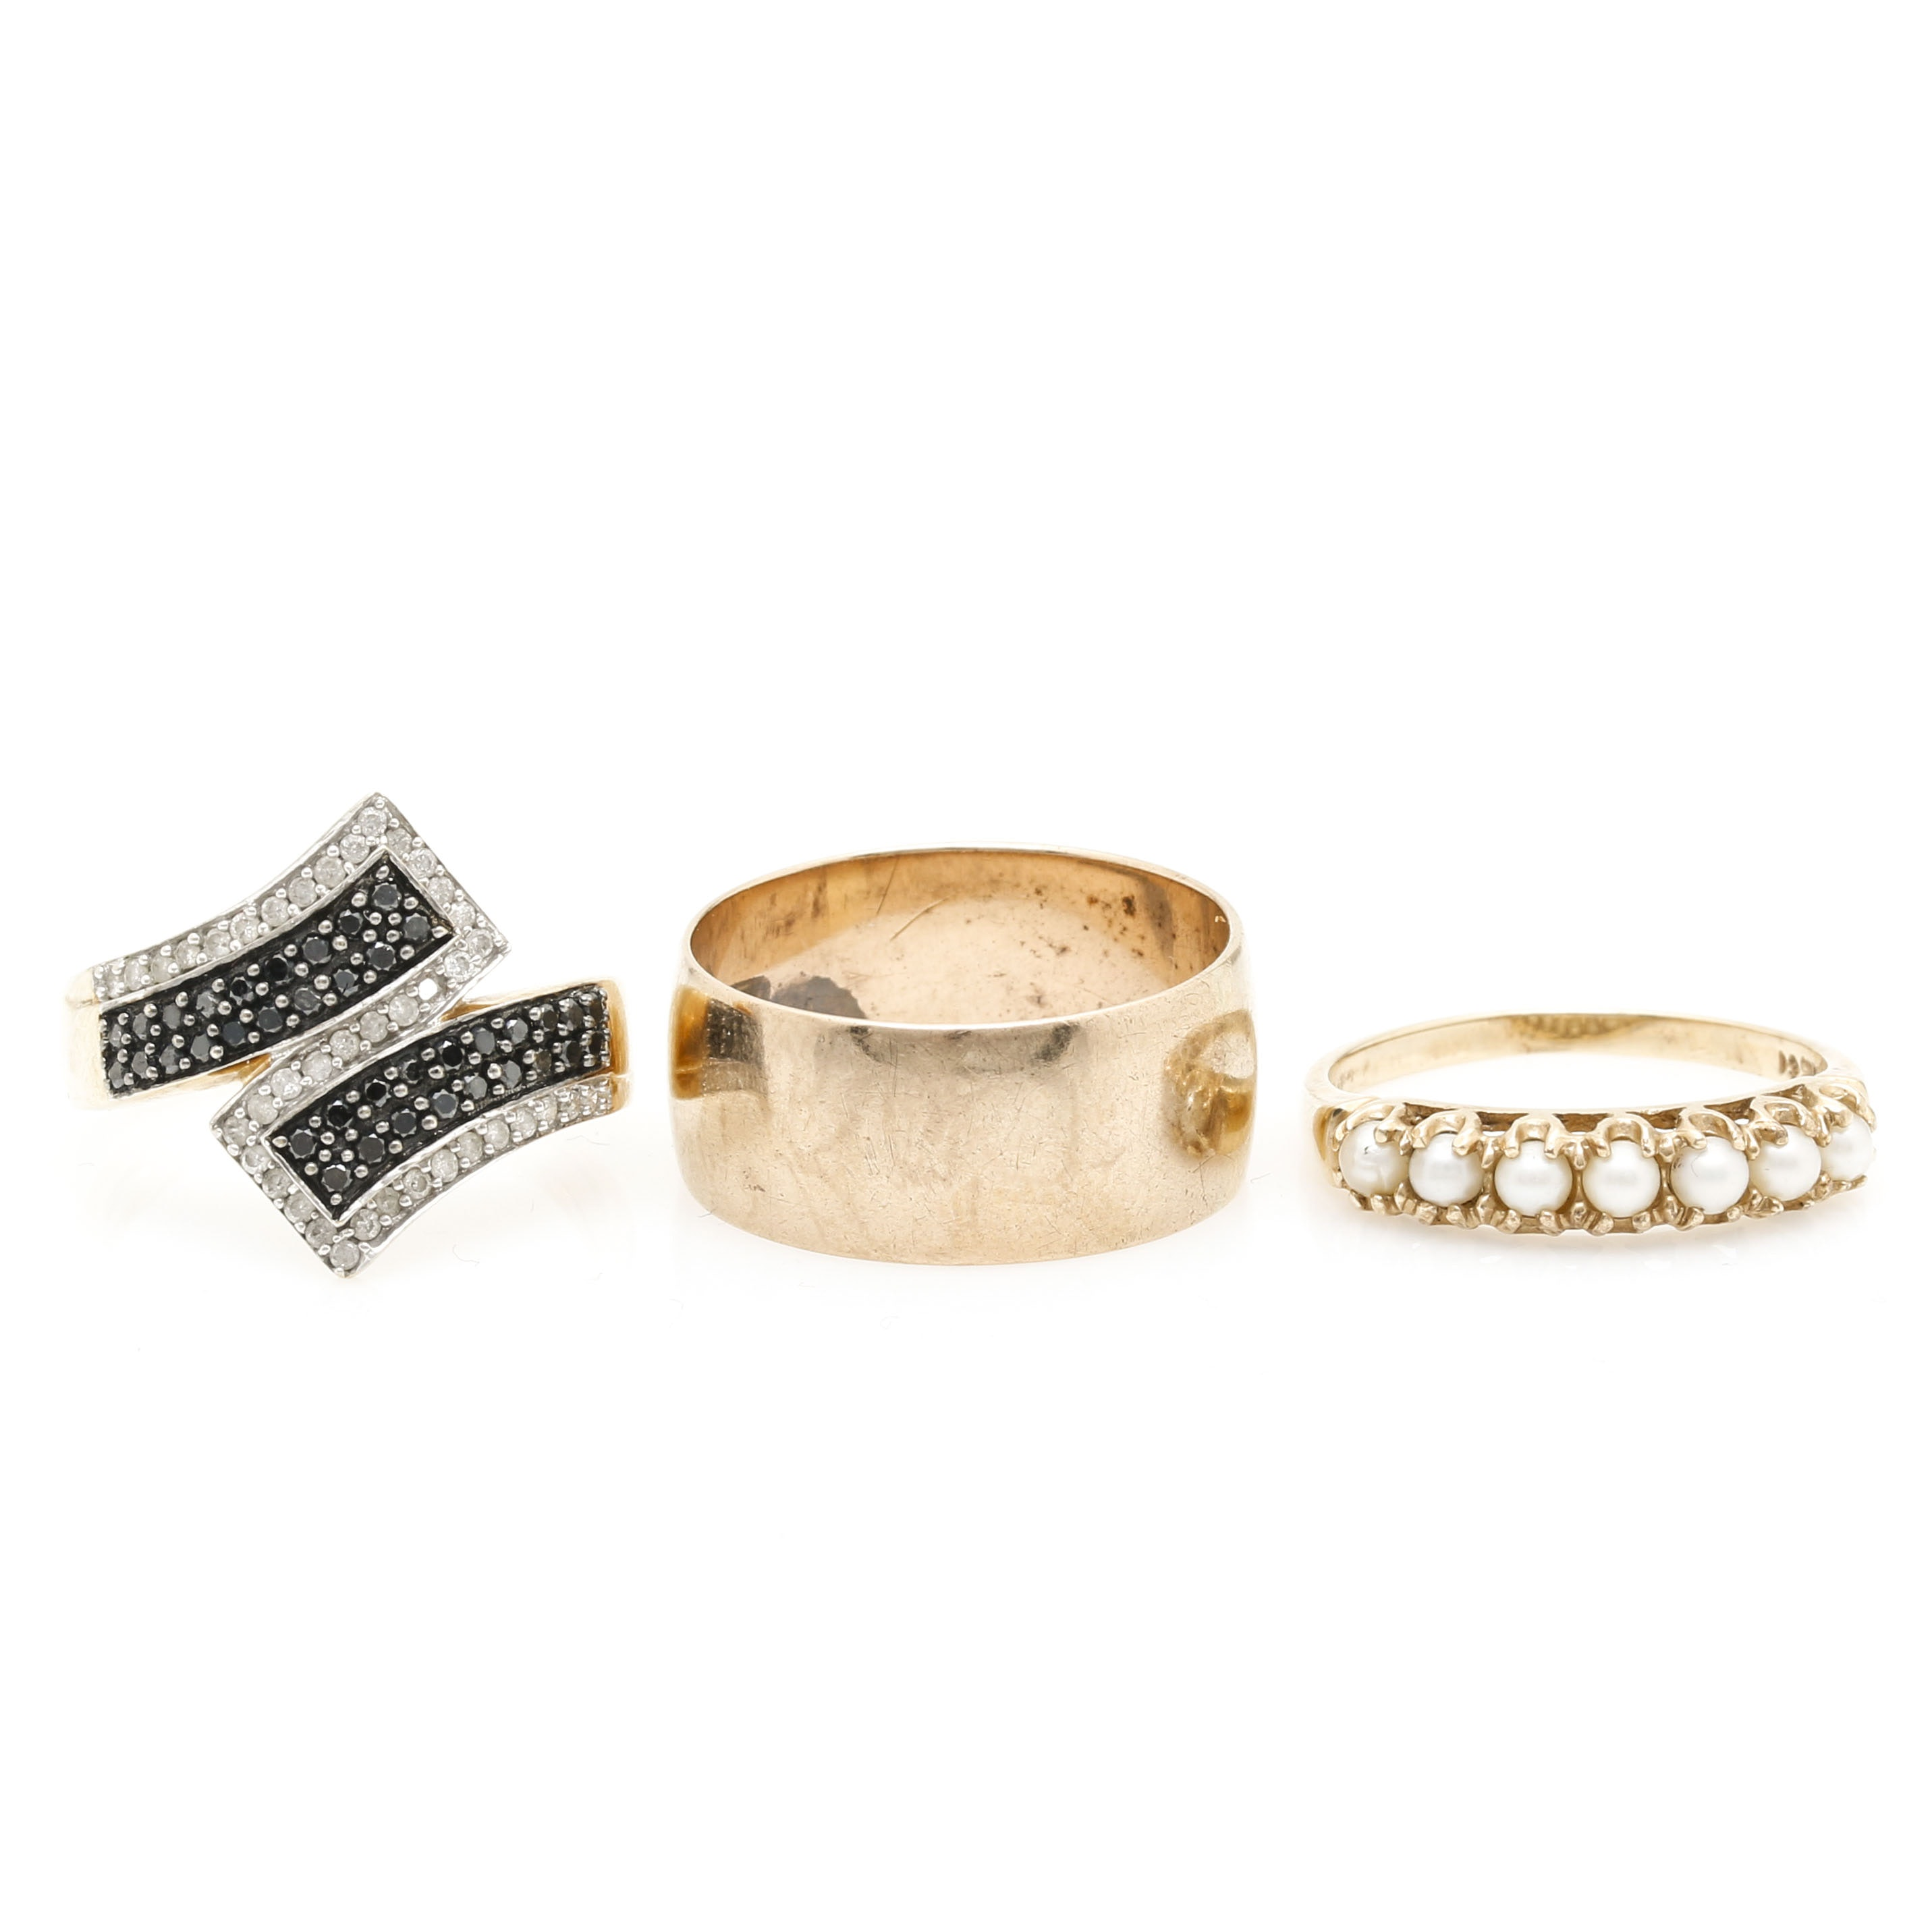 10K Yellow Gold Rings Including Diamonds and Pearls